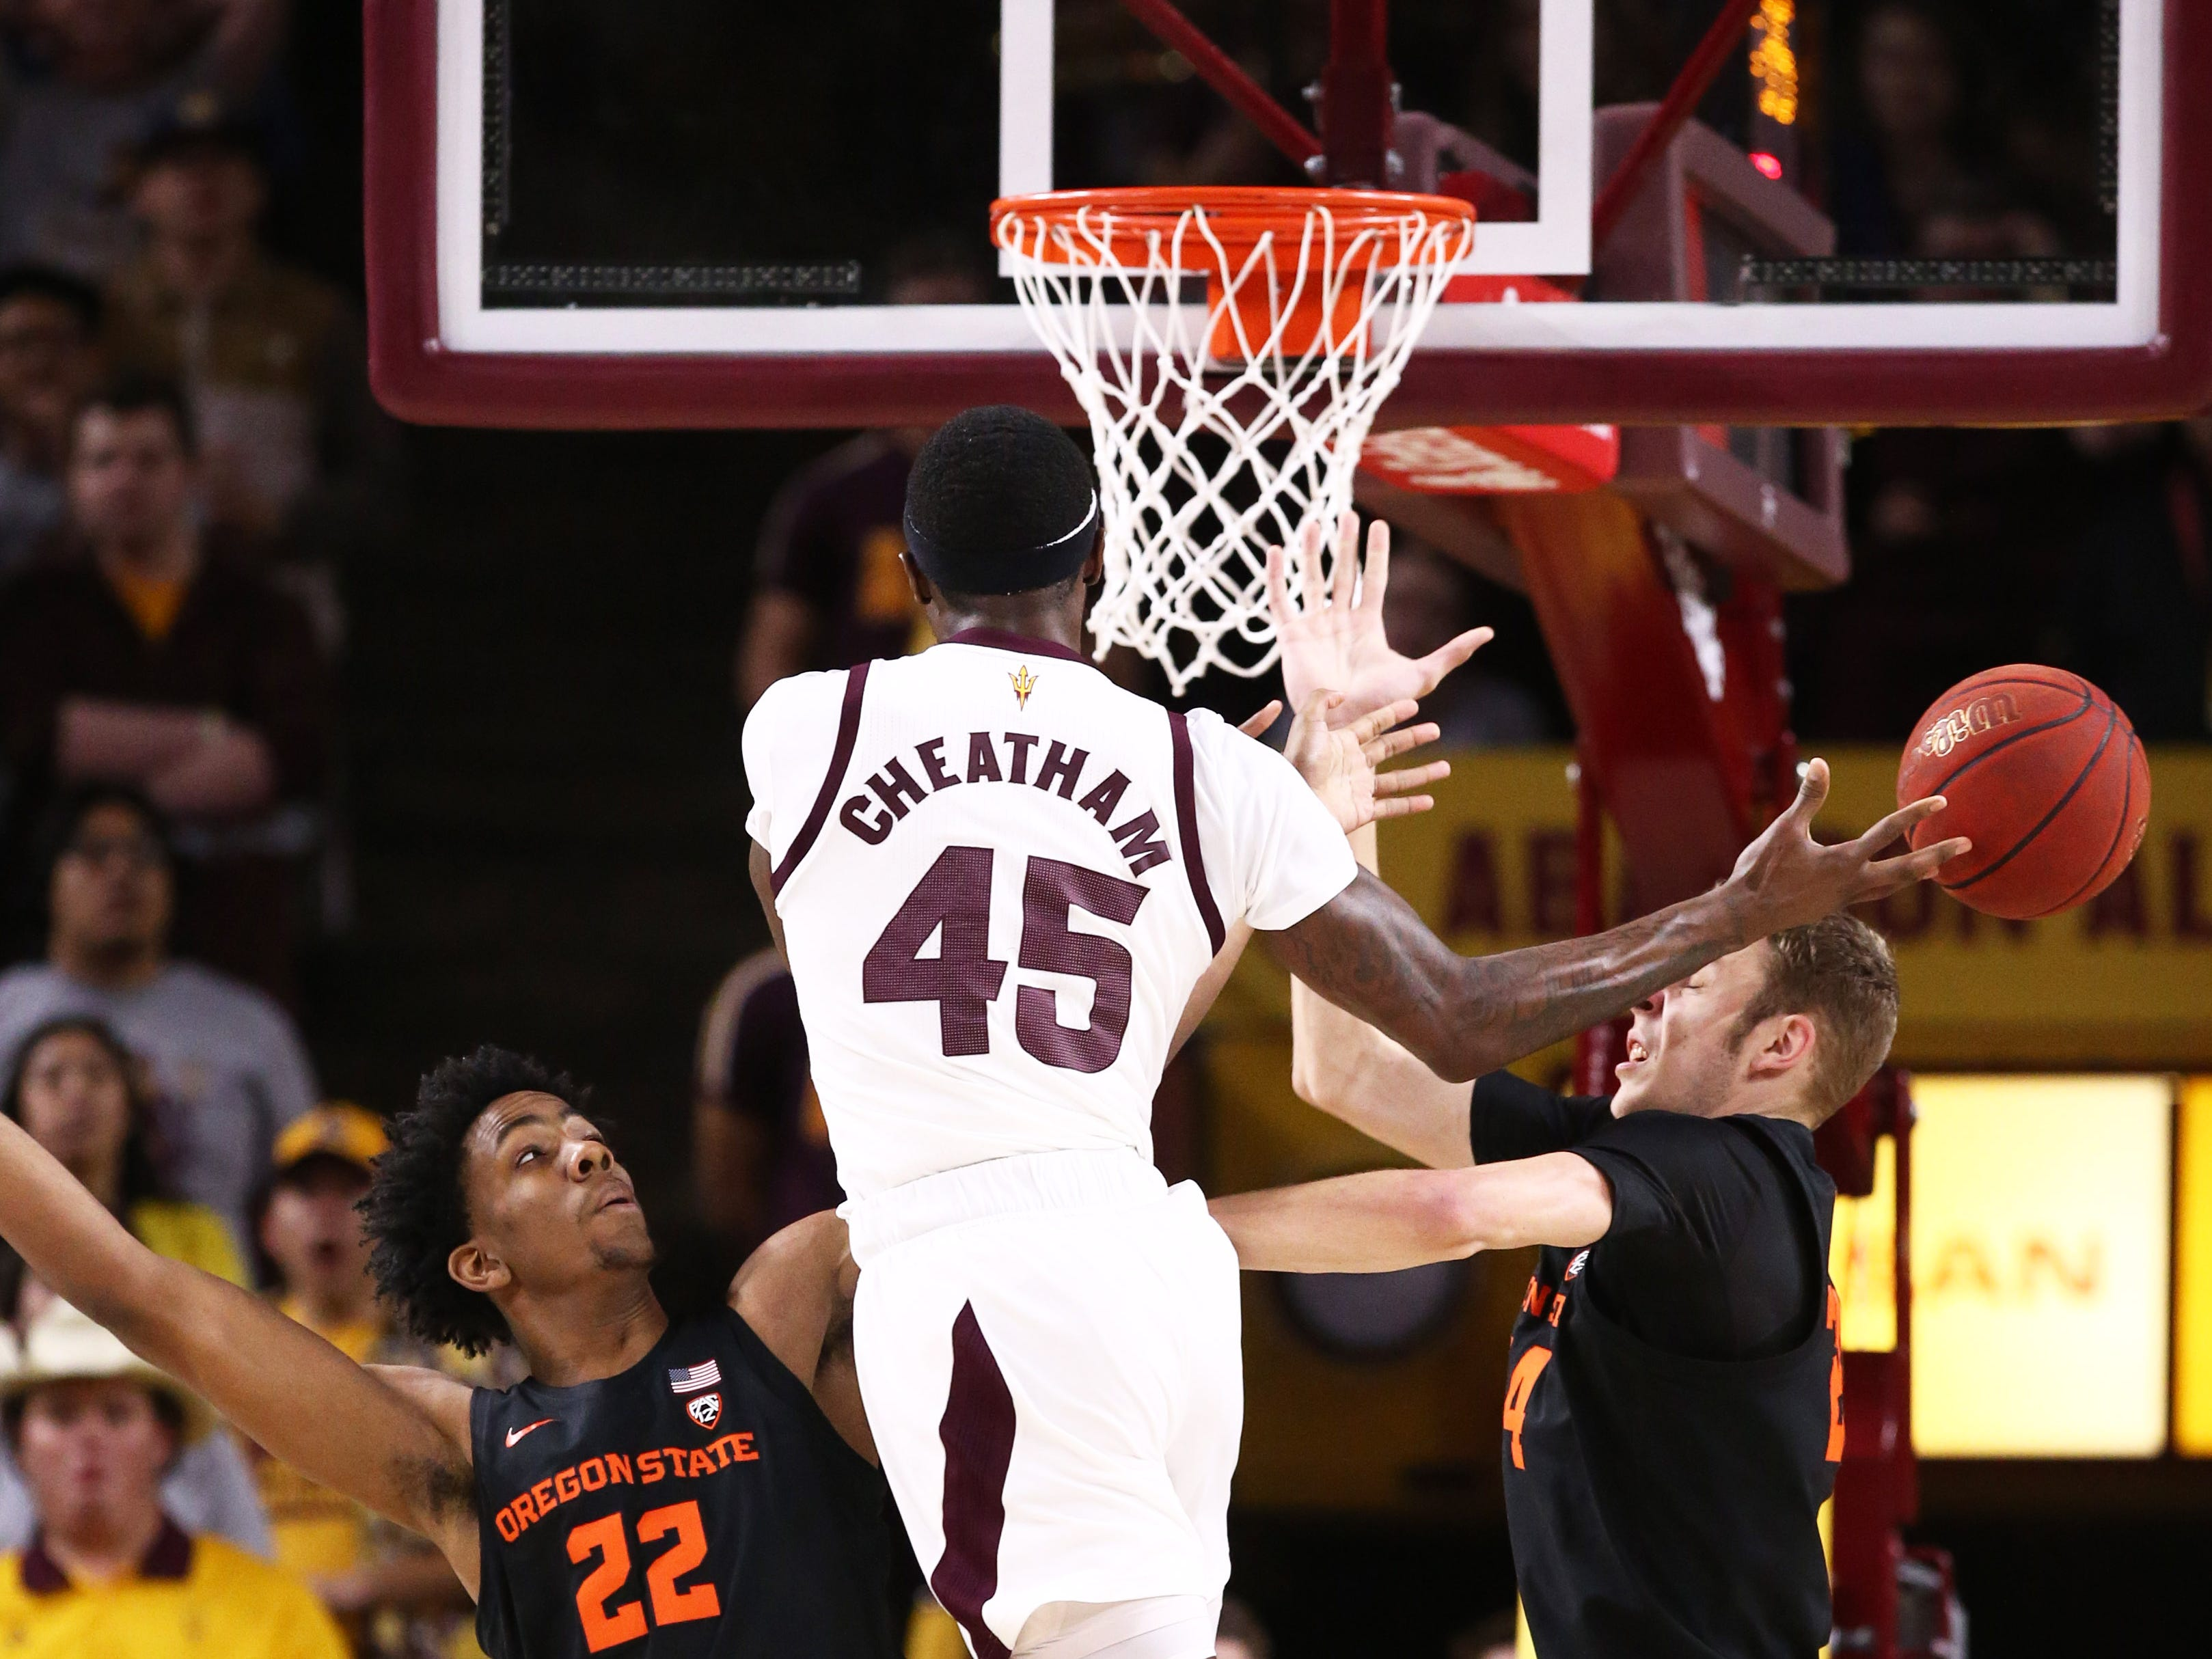 Arizona State Sun Devils forward Zylan Cheatham passes the ball against the Oregon State Beavers in the first half on Jan. 17 at Wells Fargo Arena in Tempe.